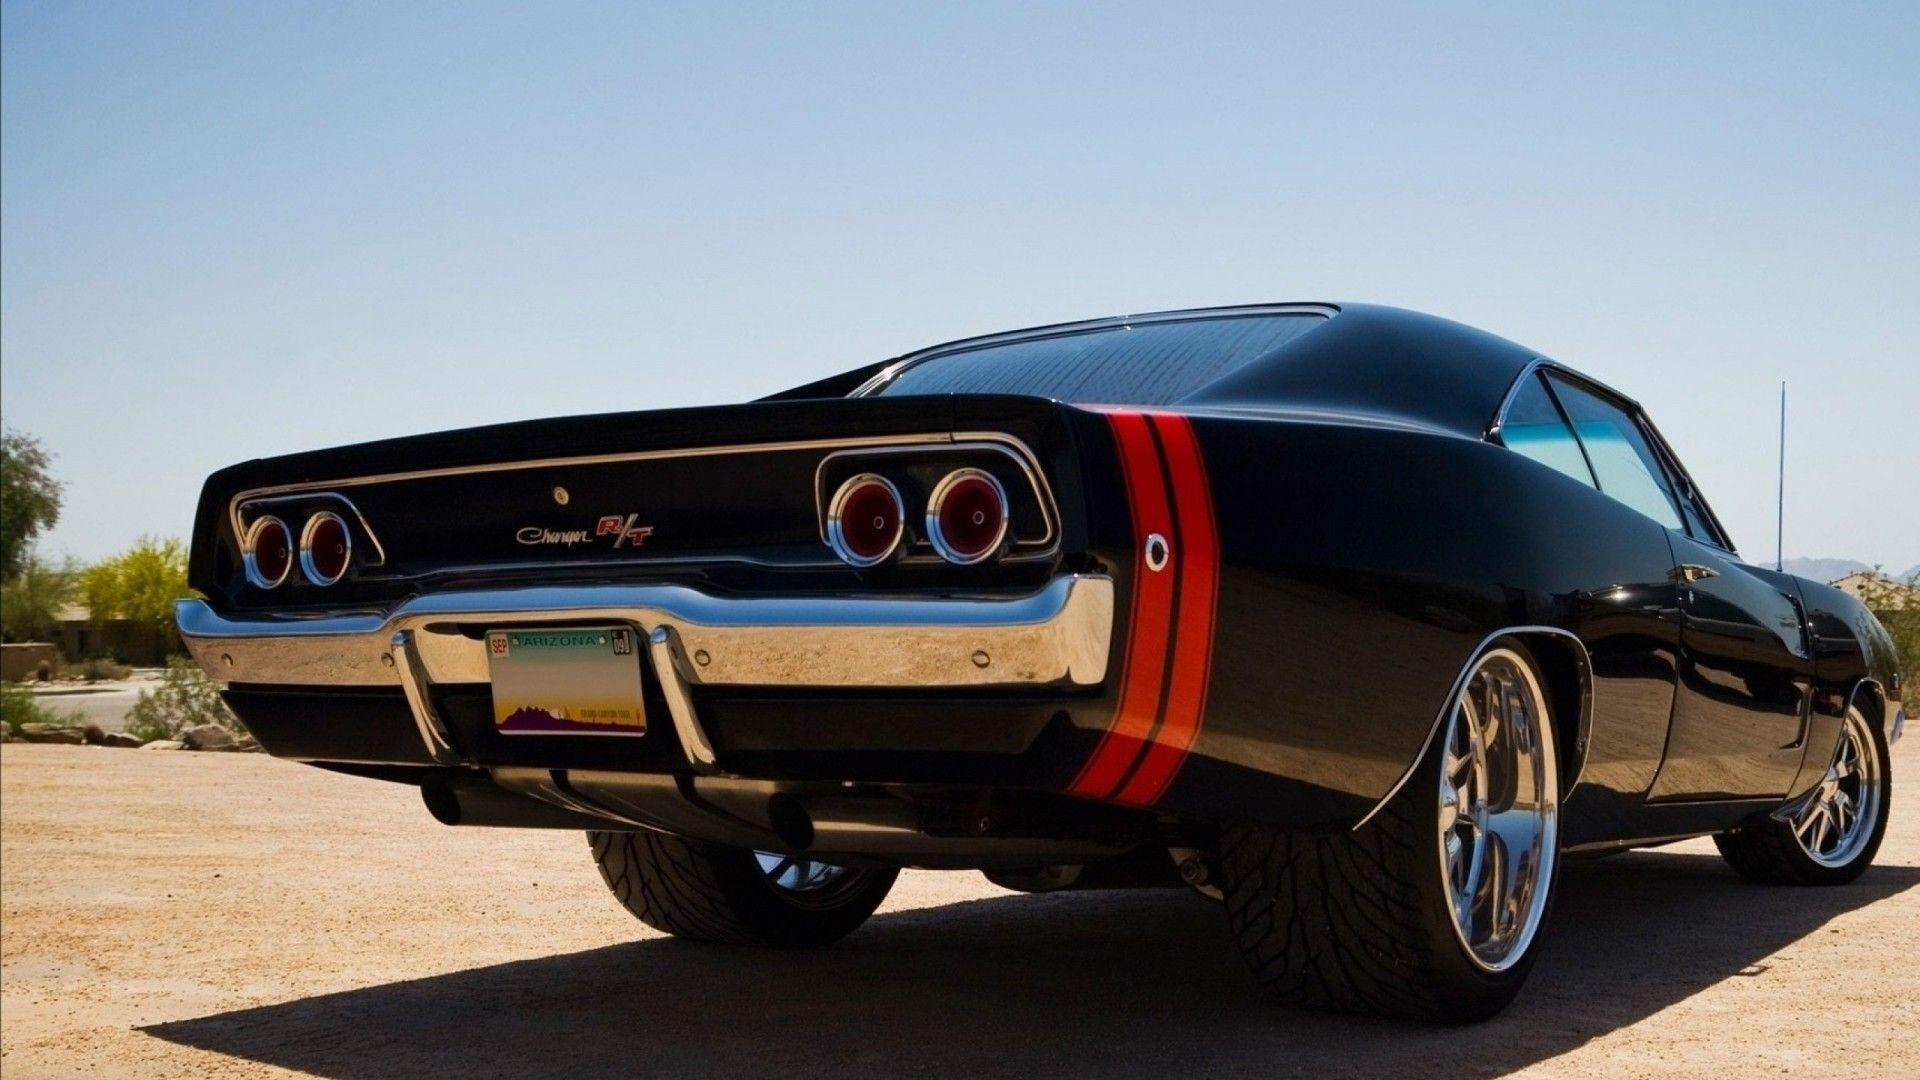 old muscle cars dodge charger wallpaper mixhd wallpapers - Old Muscle Cars For Sale